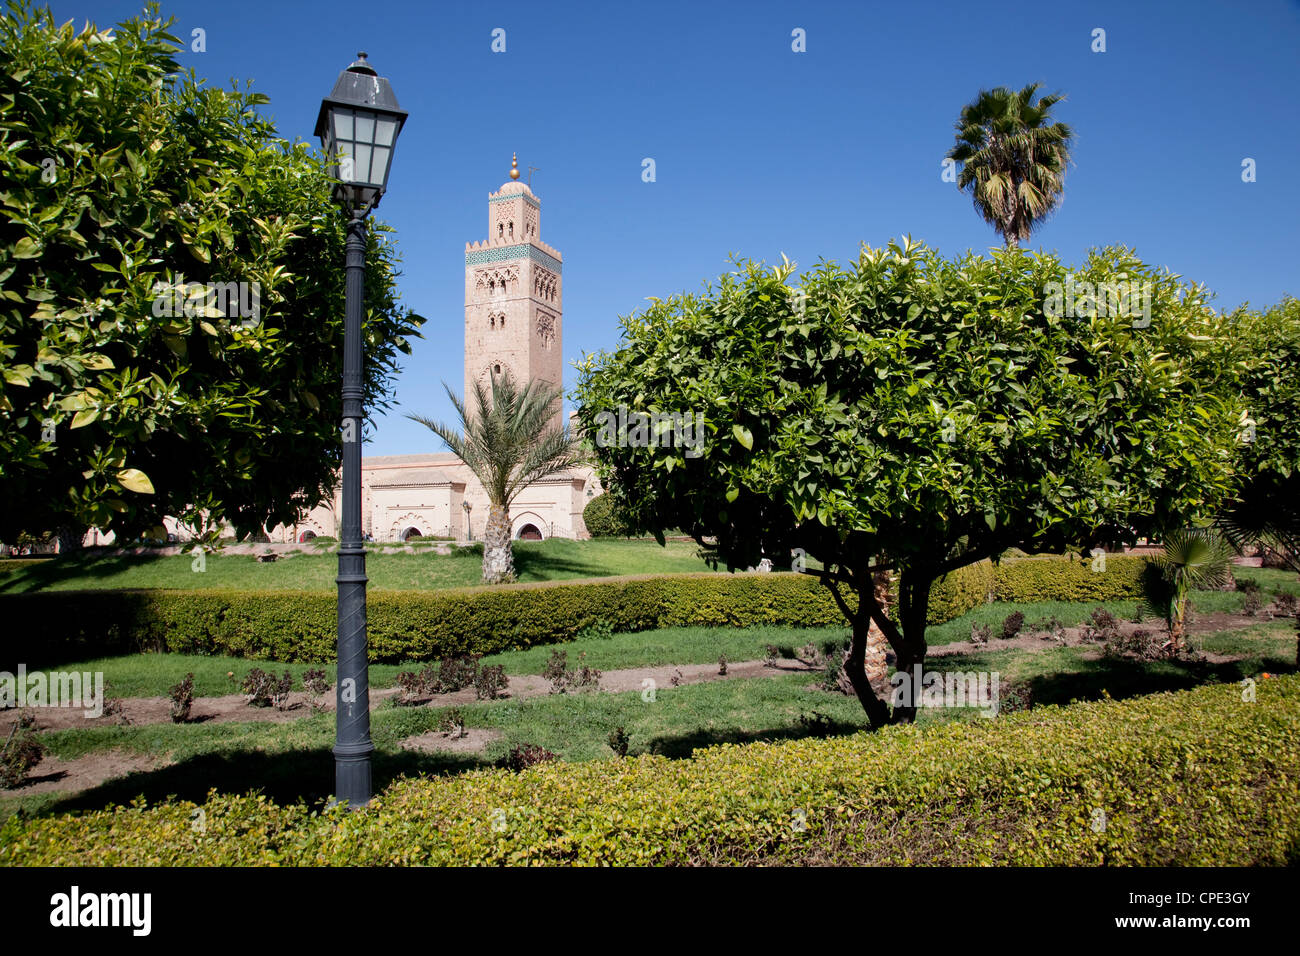 Koutoubia Mosque Minaret and Librairie Municipal, Marrakesh, Morocco, North Africa, Africa - Stock Image